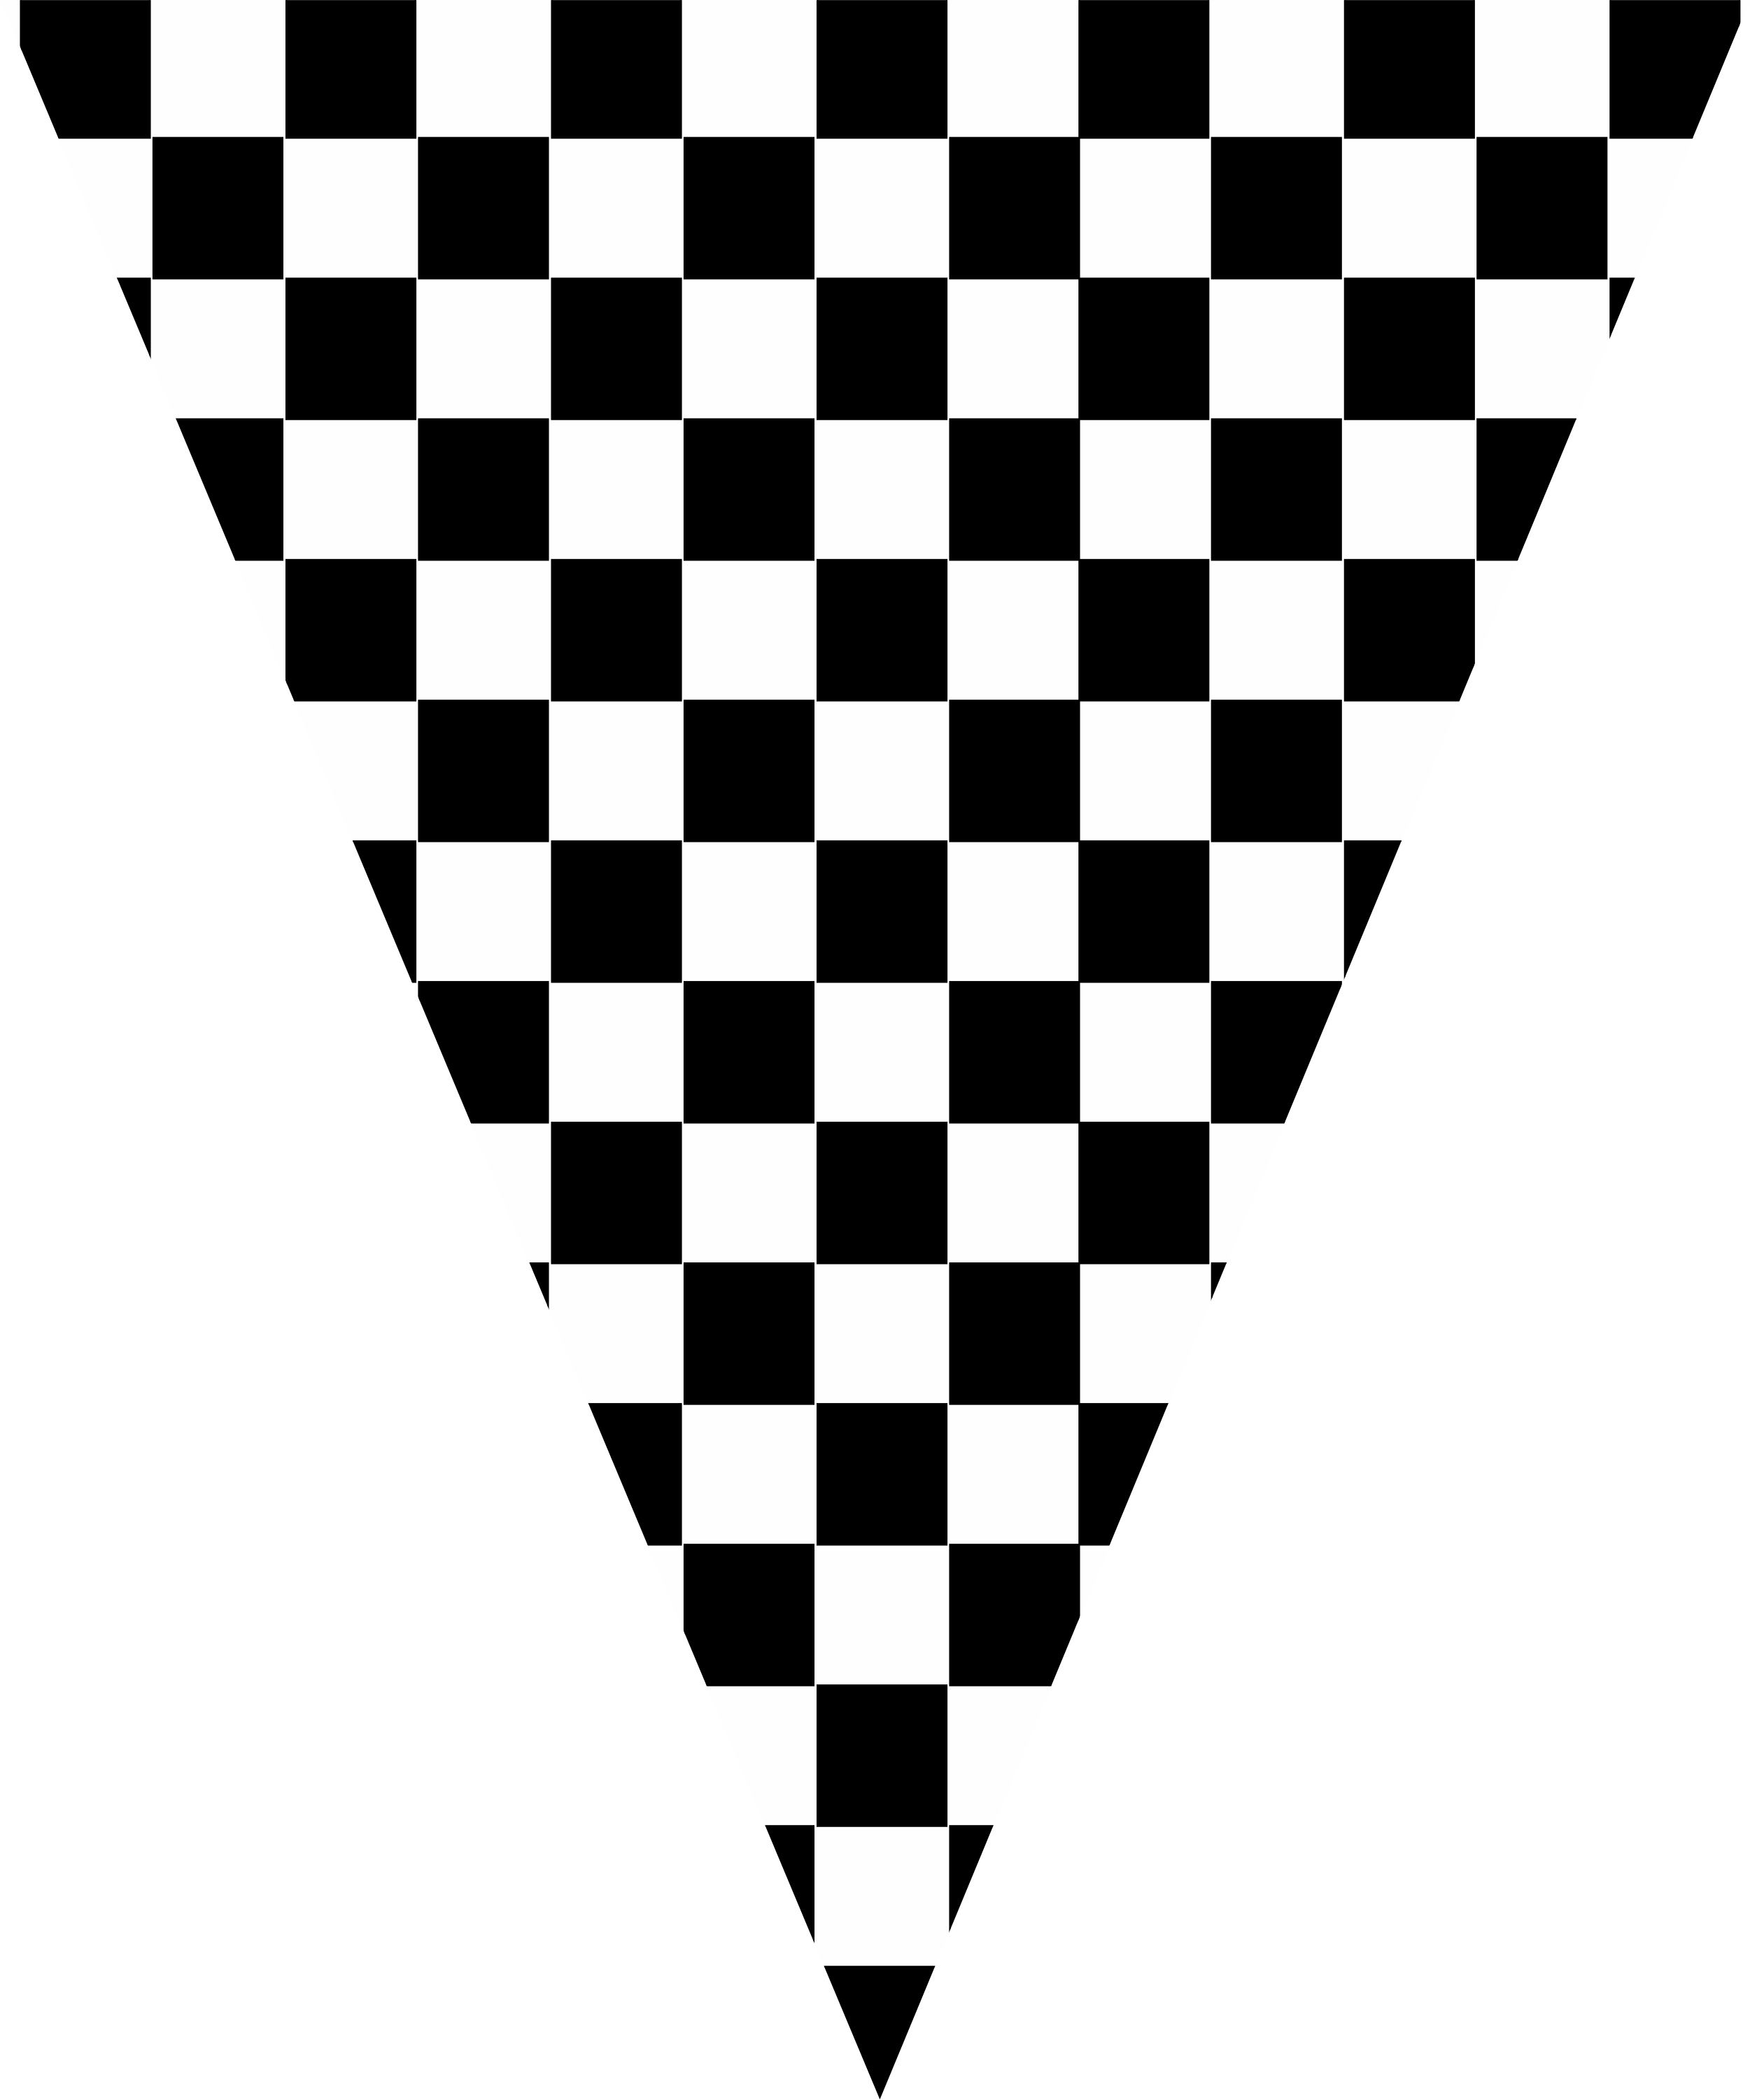 Post free Vector Microphone Icon 260648 moreover Race Flags Transparent also Car chequered f1 flag race racing icon likewise Racing 20clipart 20flag 20 additionally 111621269995. on racing flags clip art